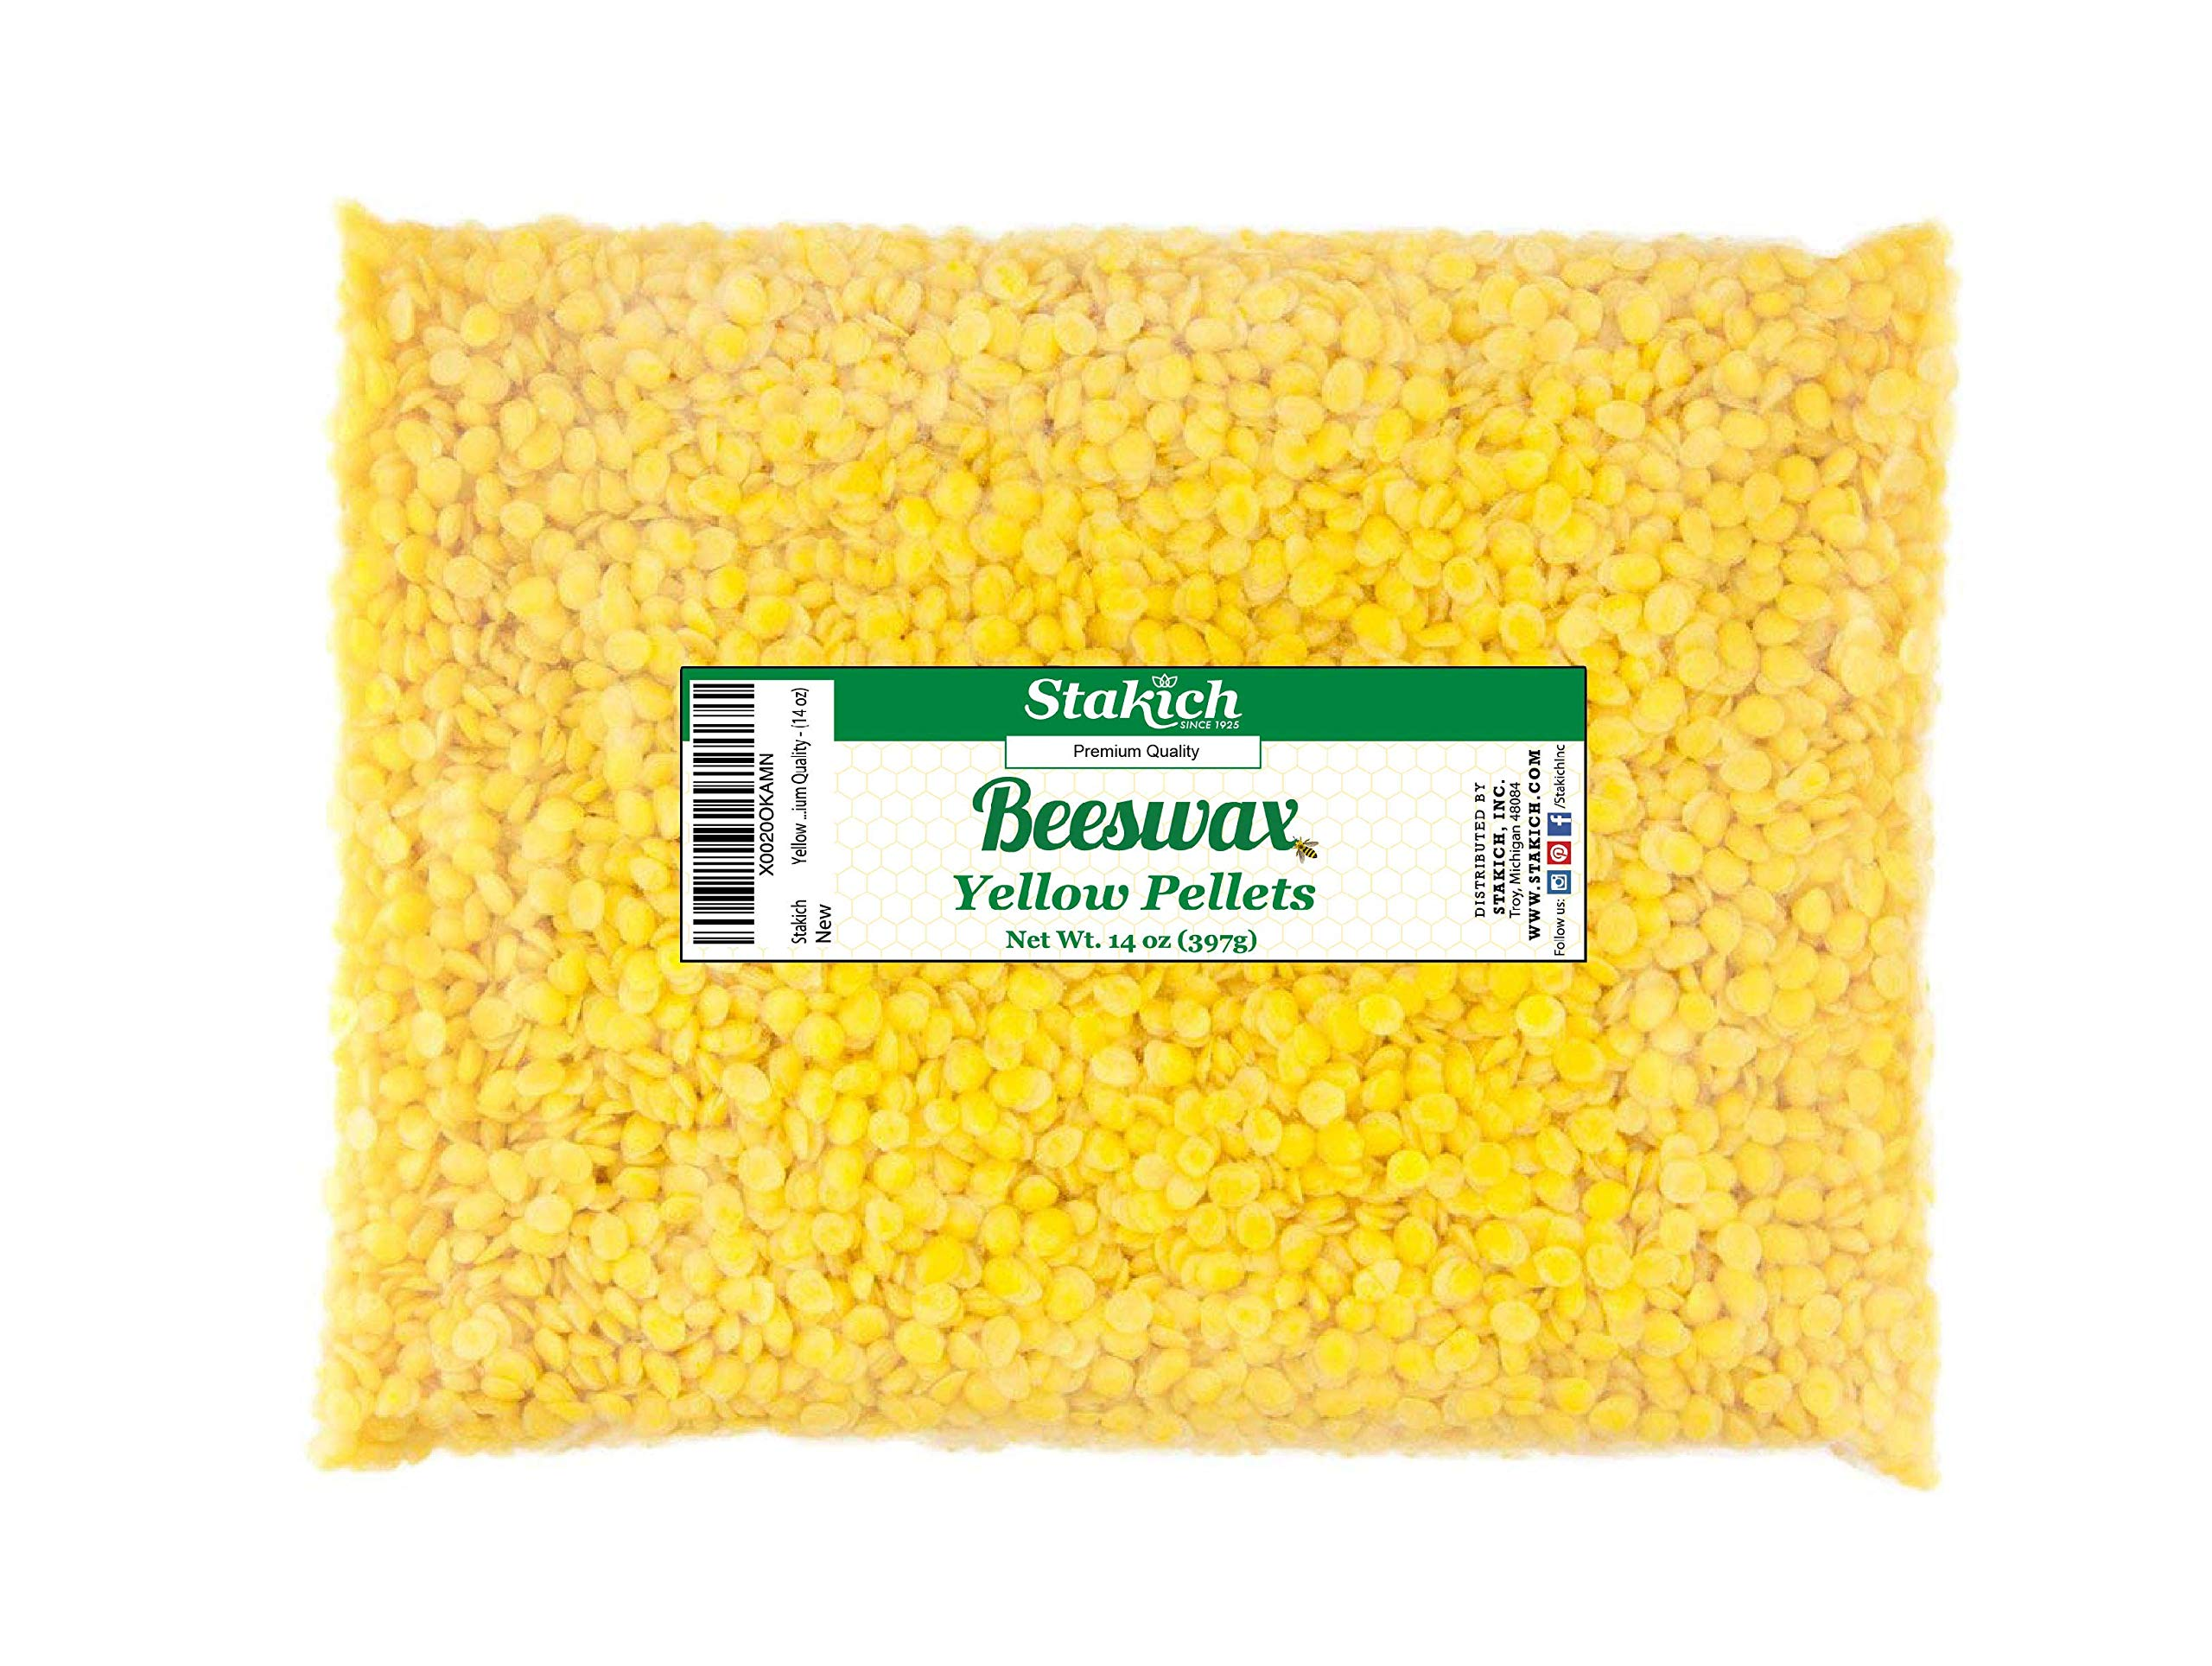 Stakich Yellow Beeswax Pellets Premium Cosmetic Grade, 5 Pound